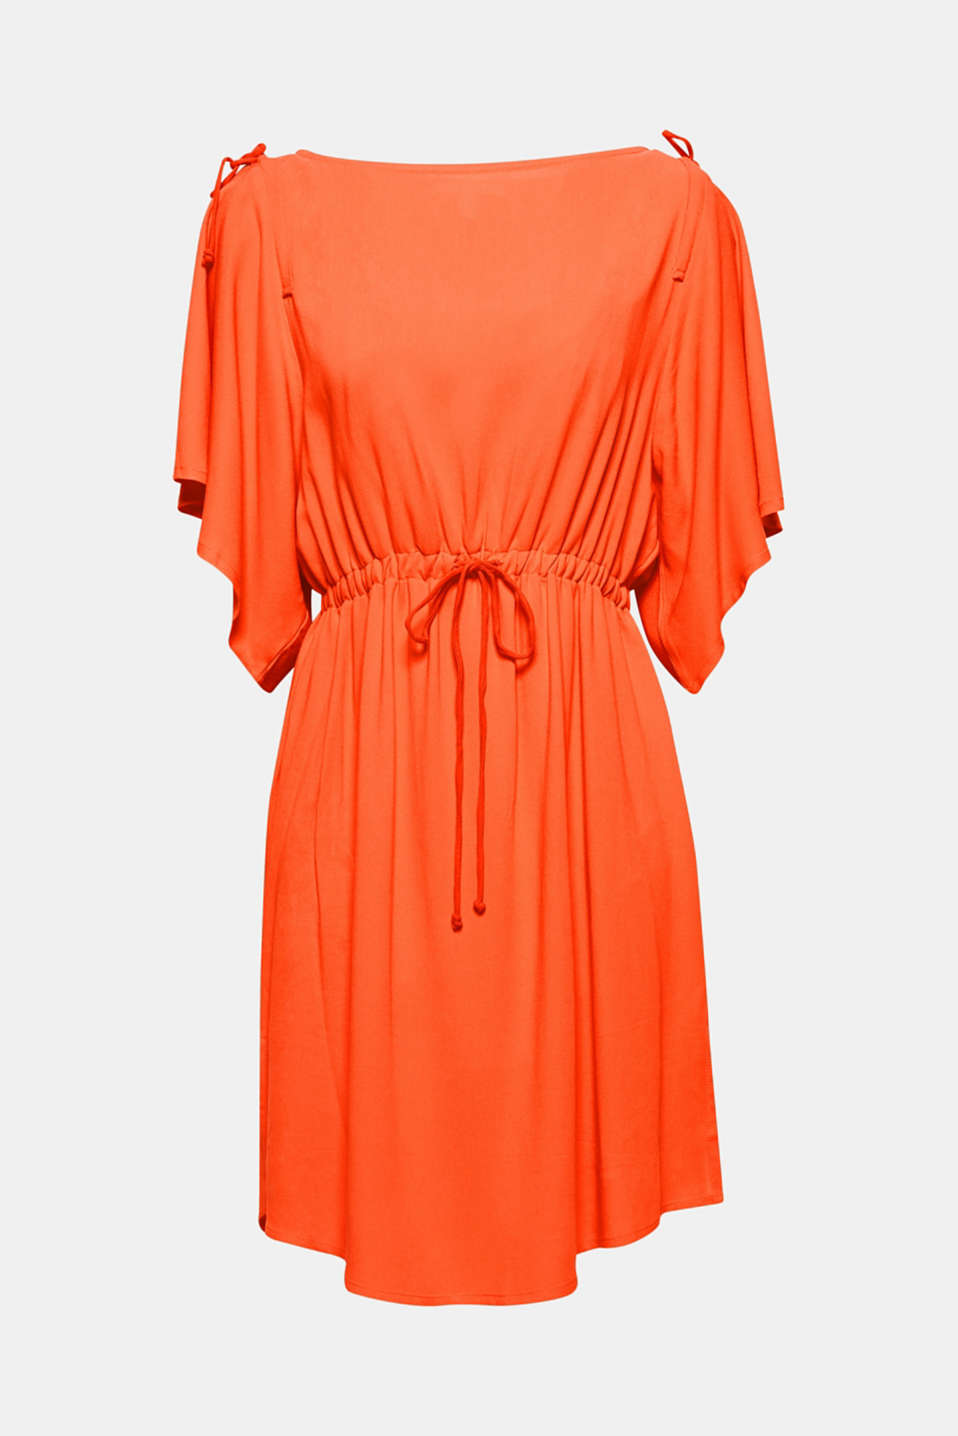 The flounce sleeves decorated with bows and flowing, pure viscose fabric give this dress a stylish, ultra feminine vibe.